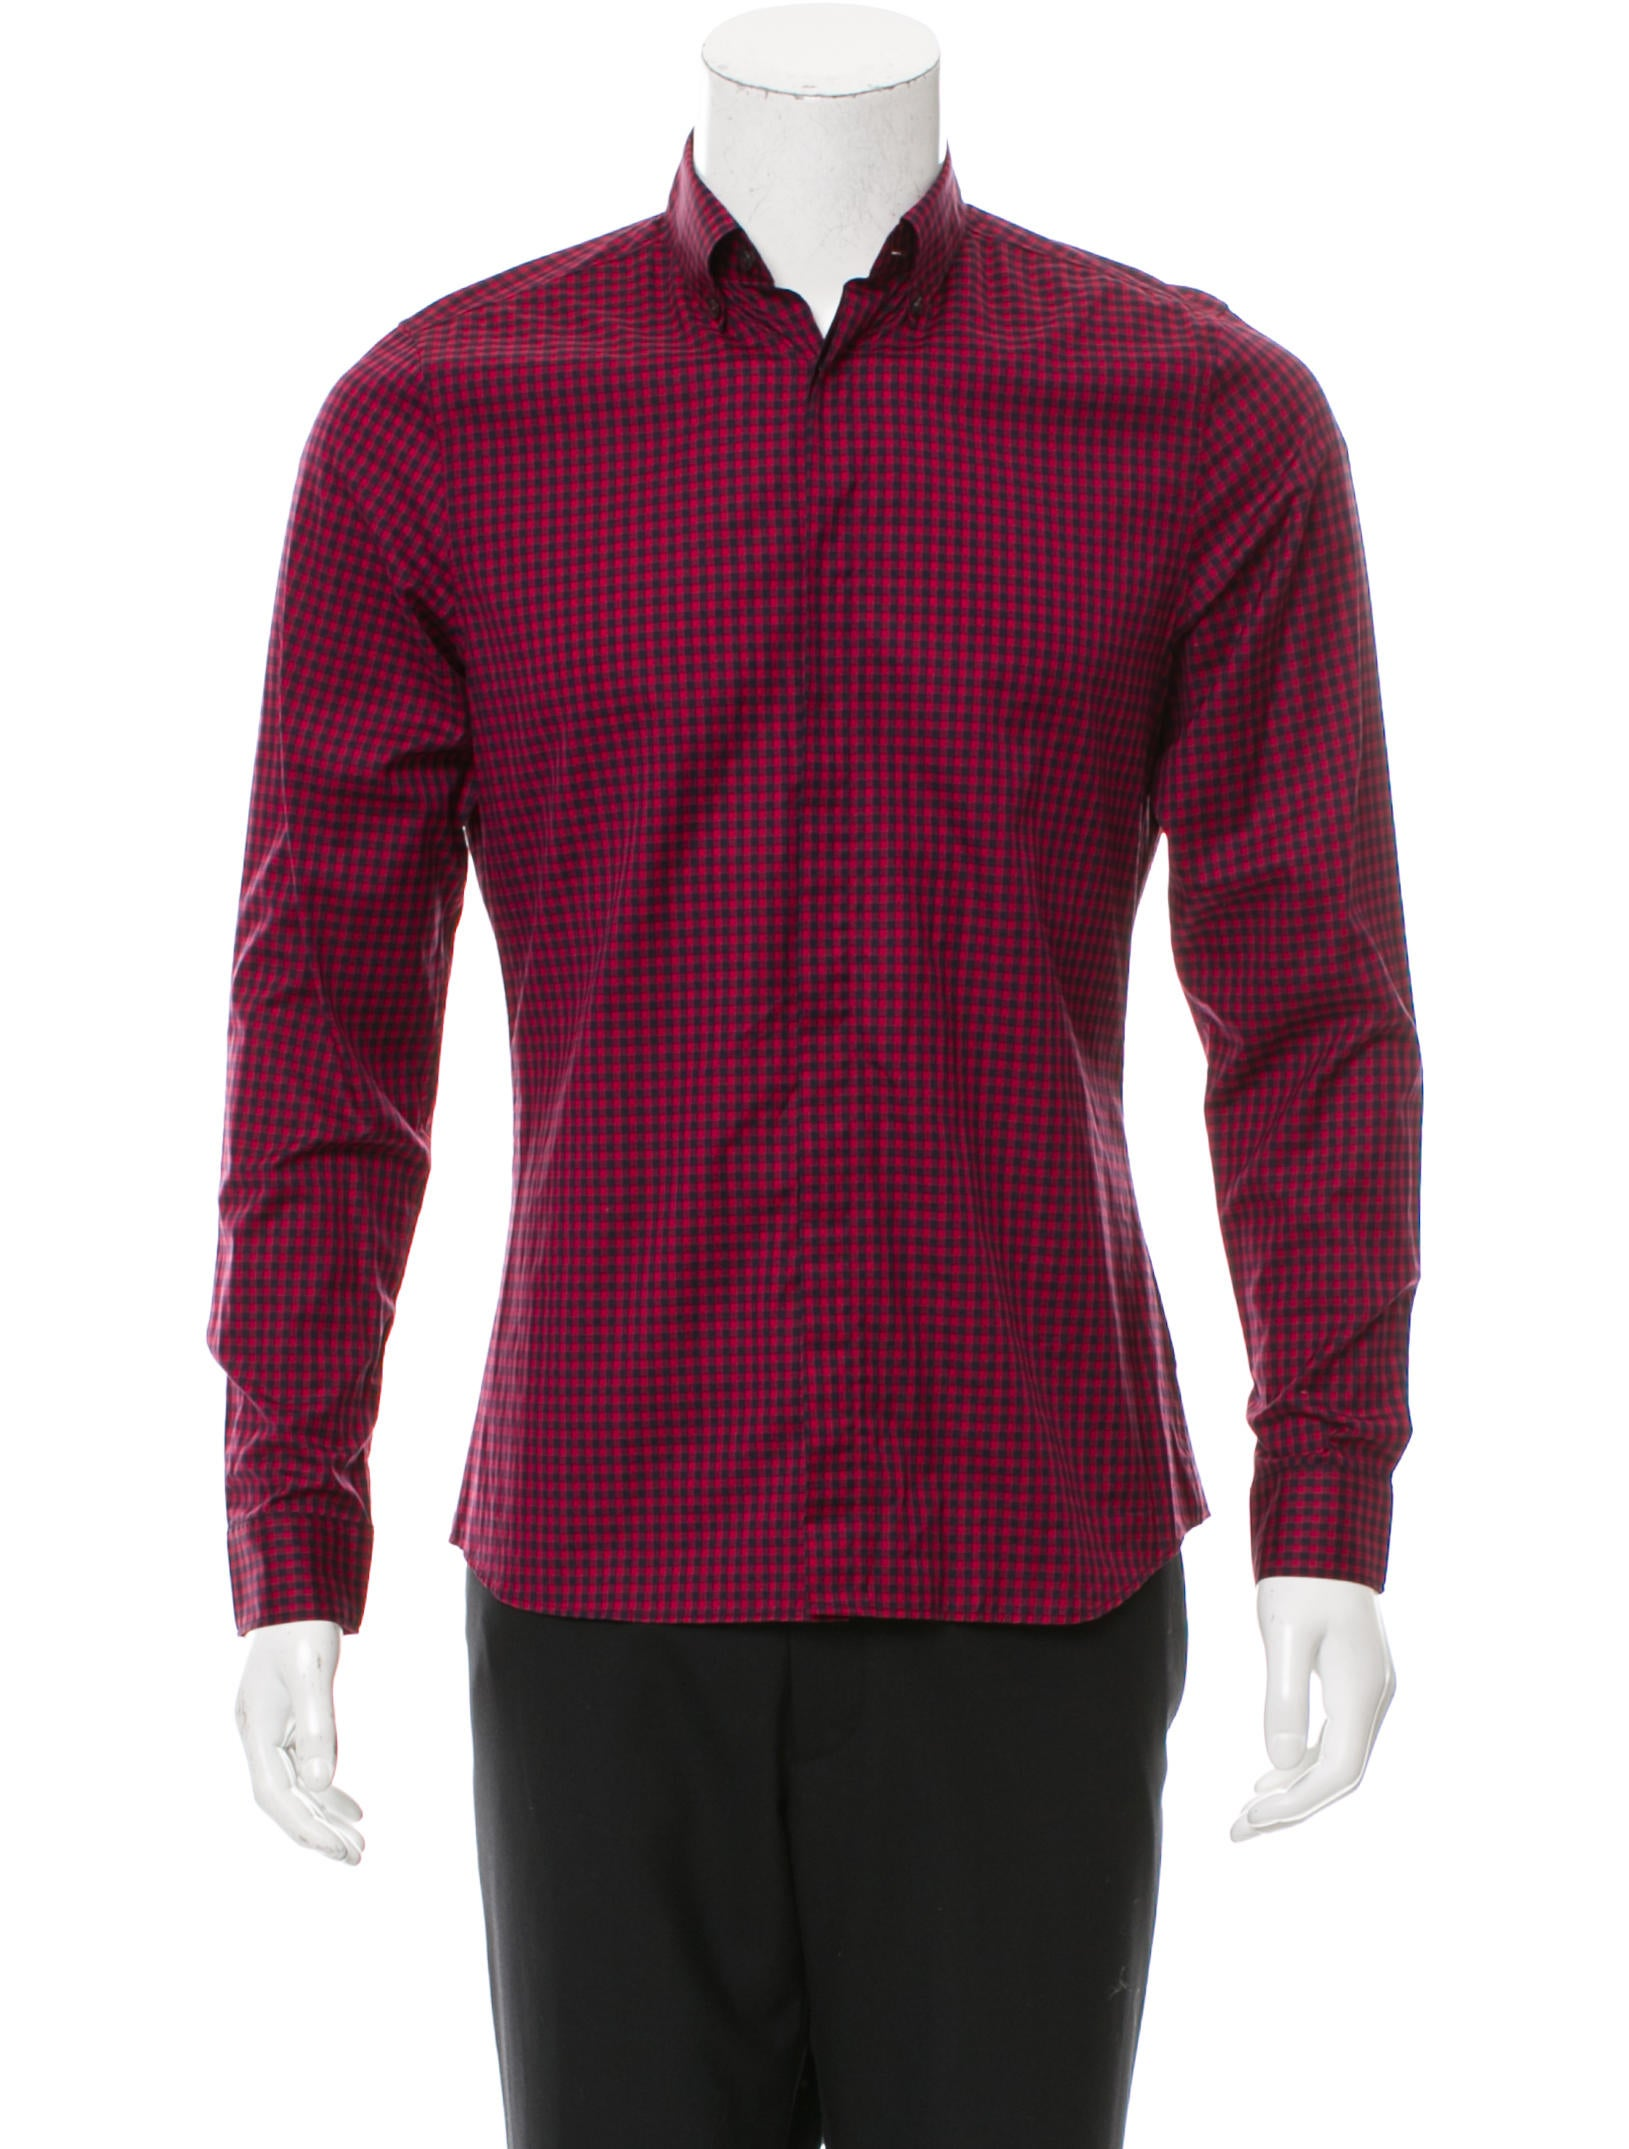 Burberry London Gingham Button Up Shirt W Tags Clothing